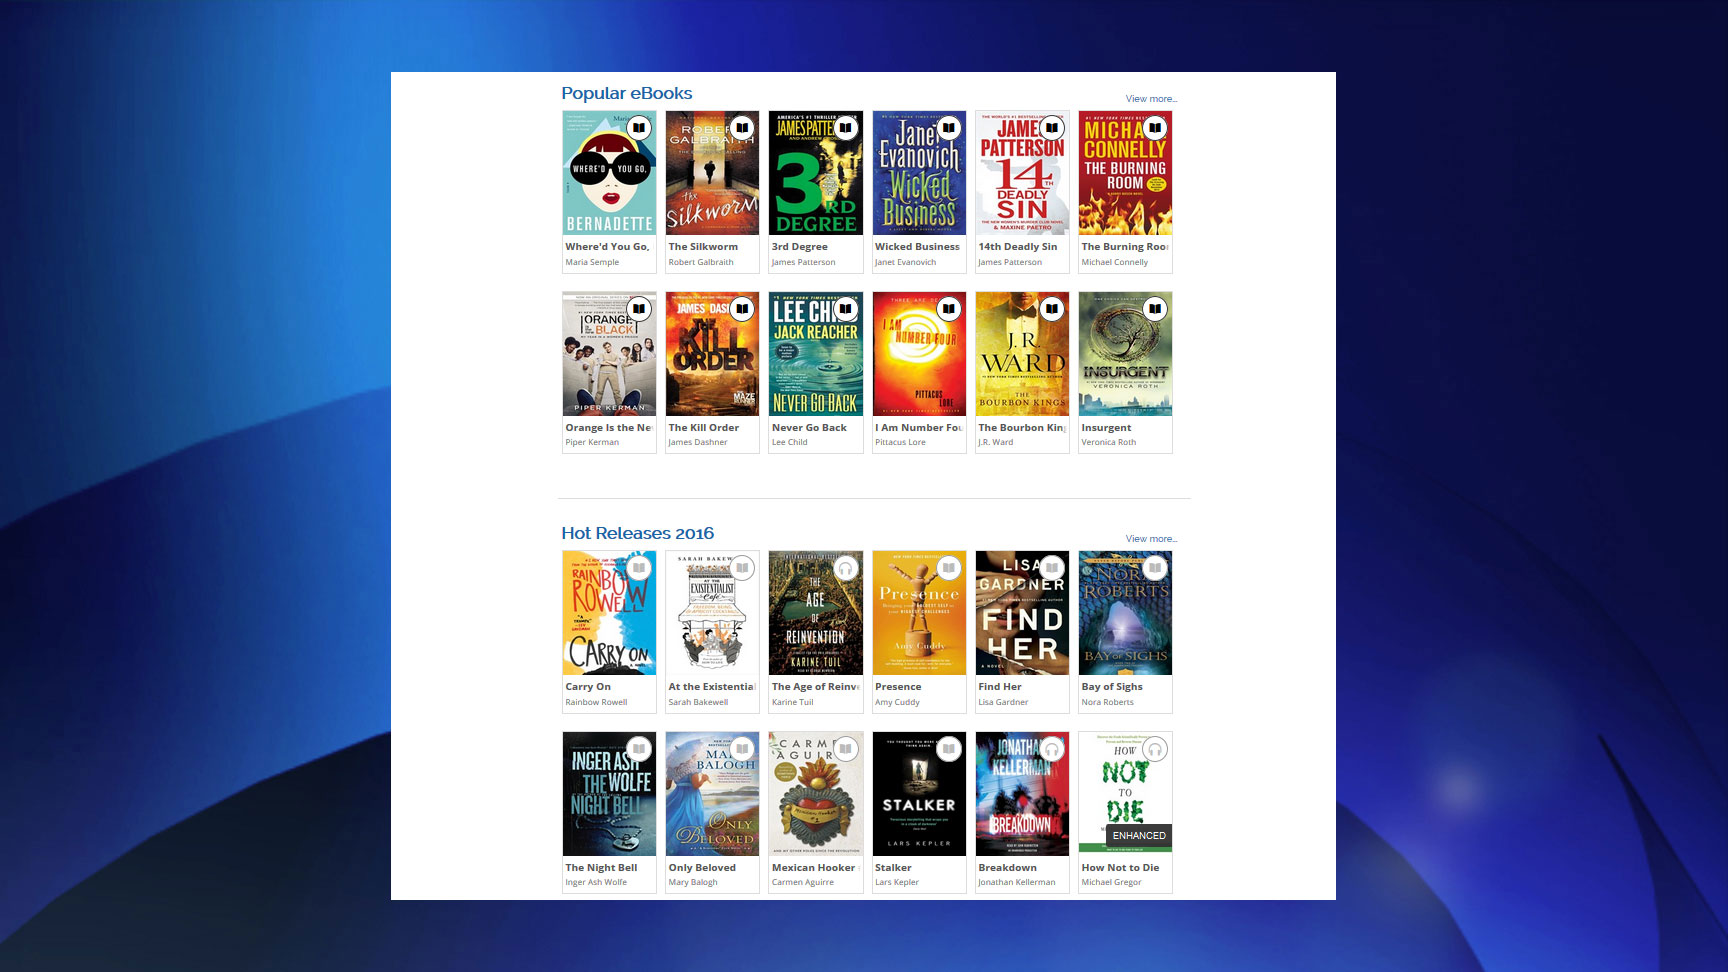 Not new, but did you know? Toronto library e-lends not just e-books